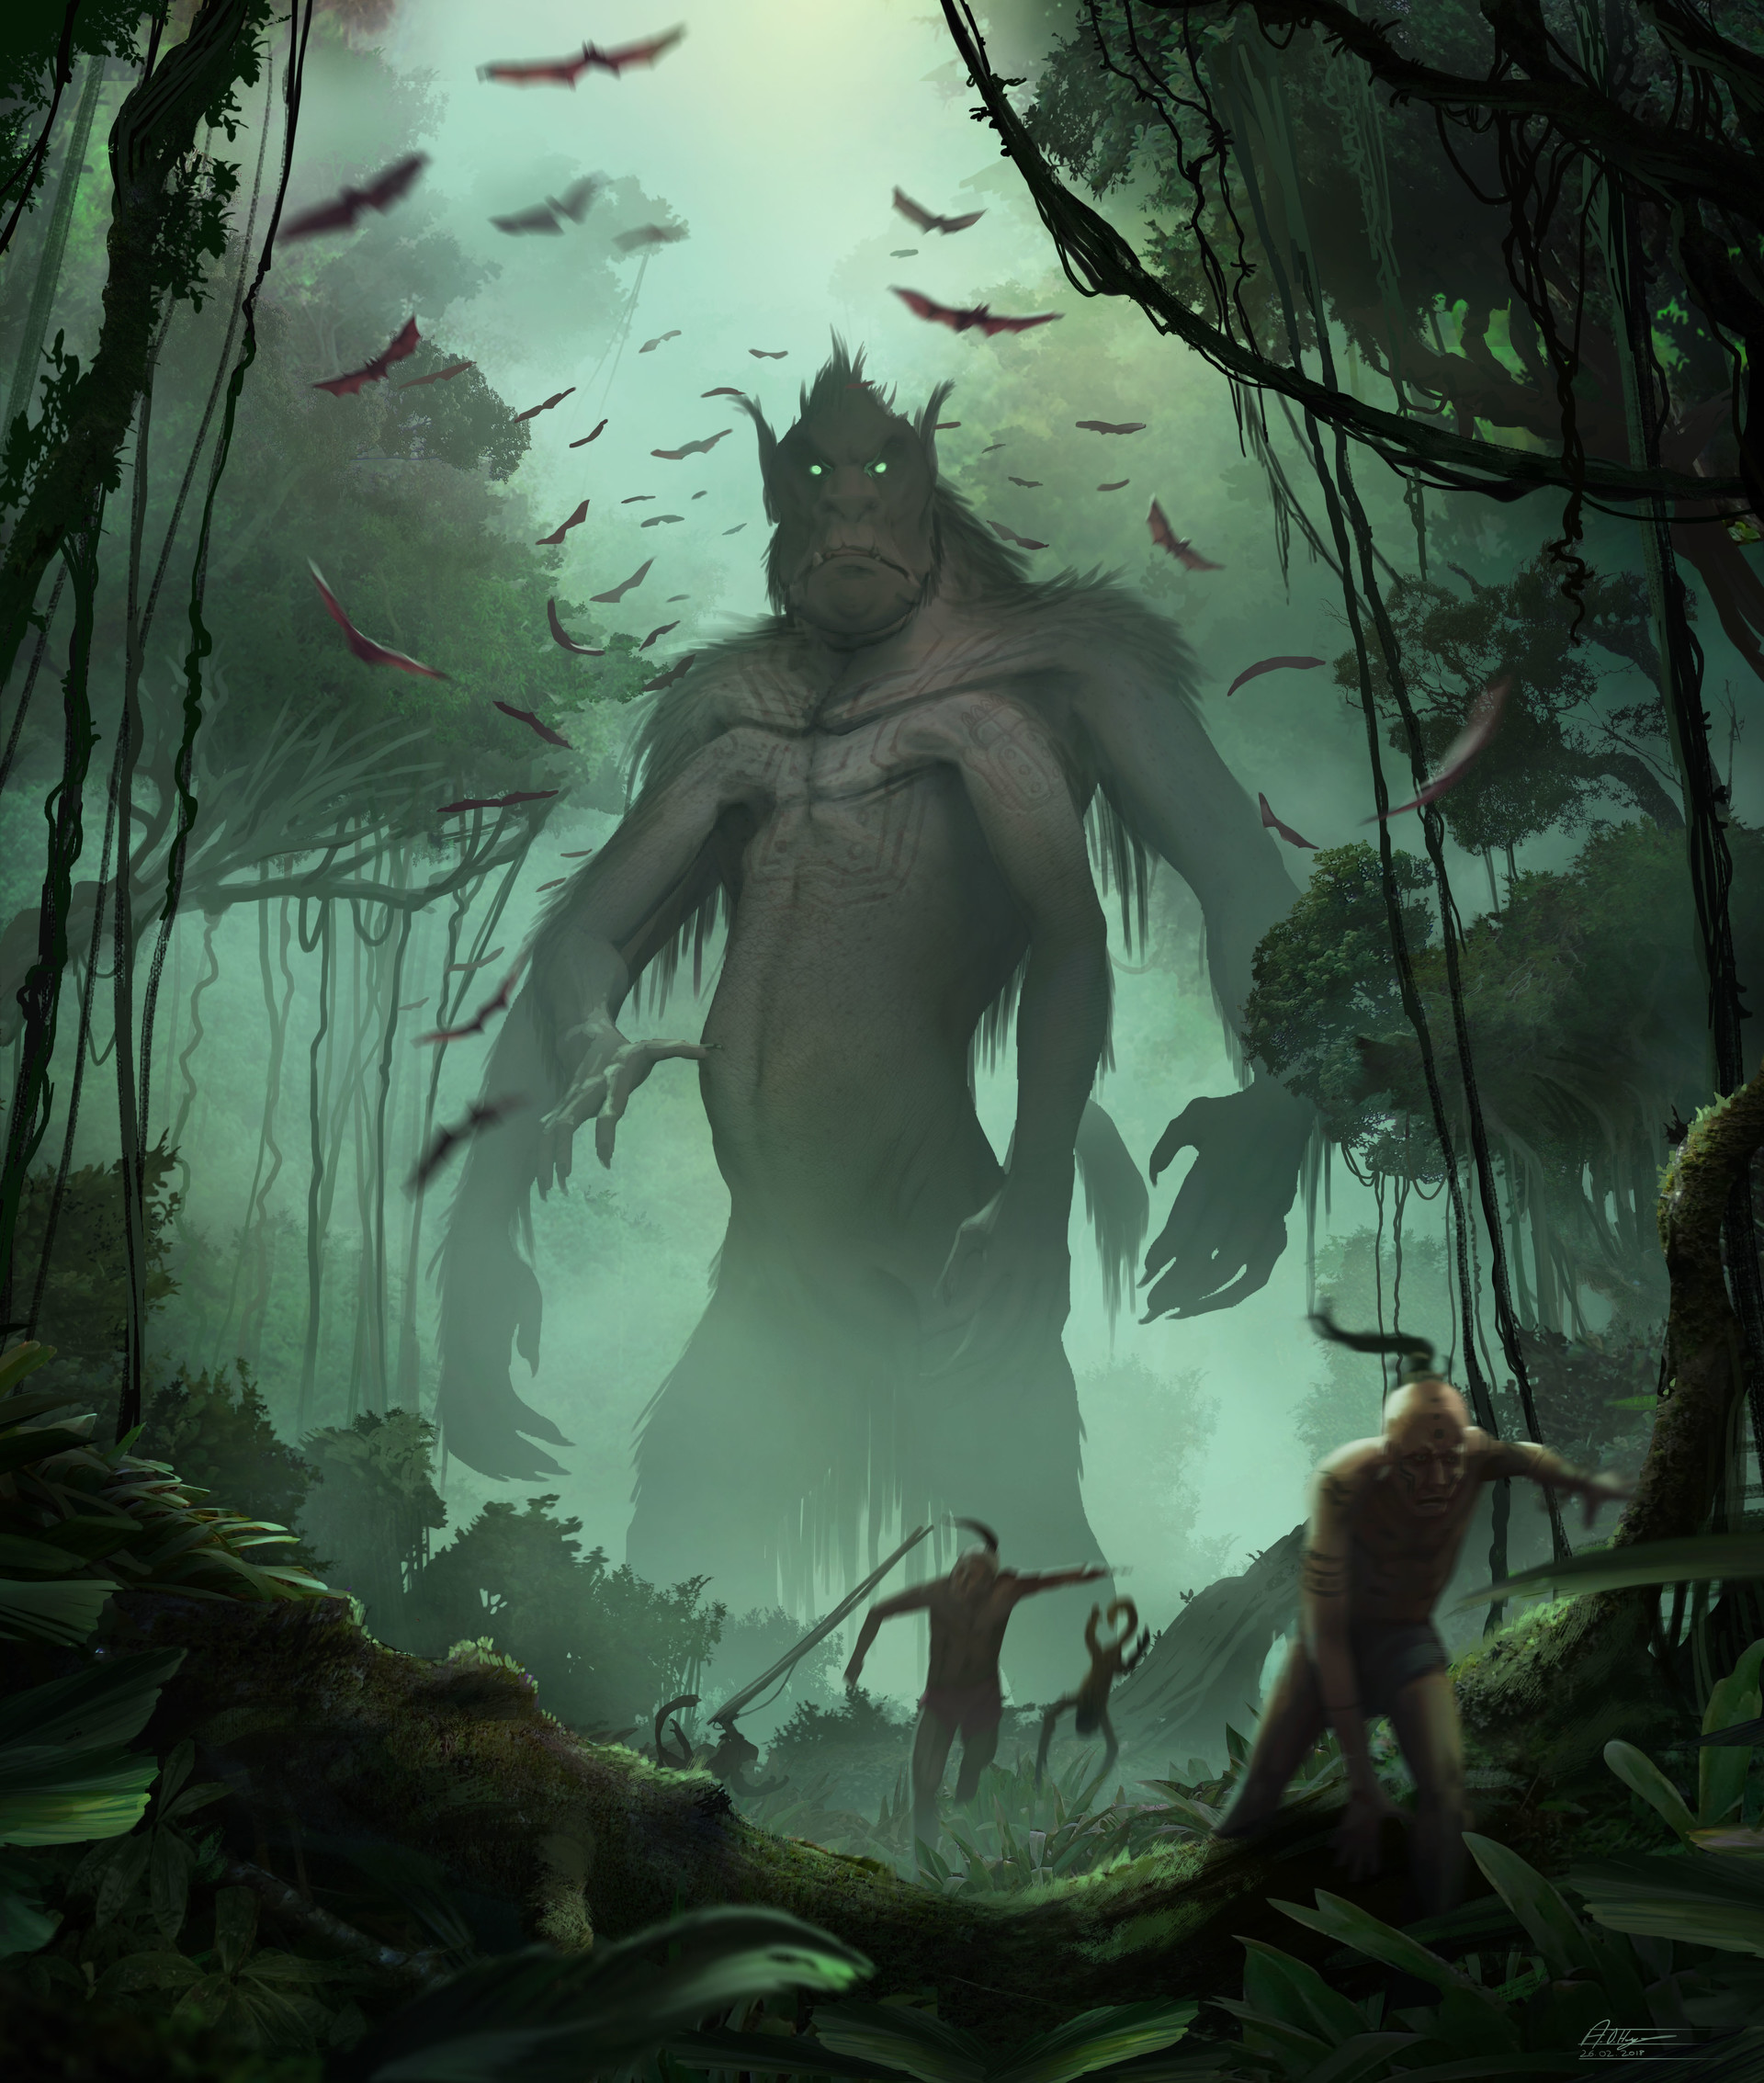 Anime Video Wallpaper Artstation Forest Spirit Creature Design Anthony